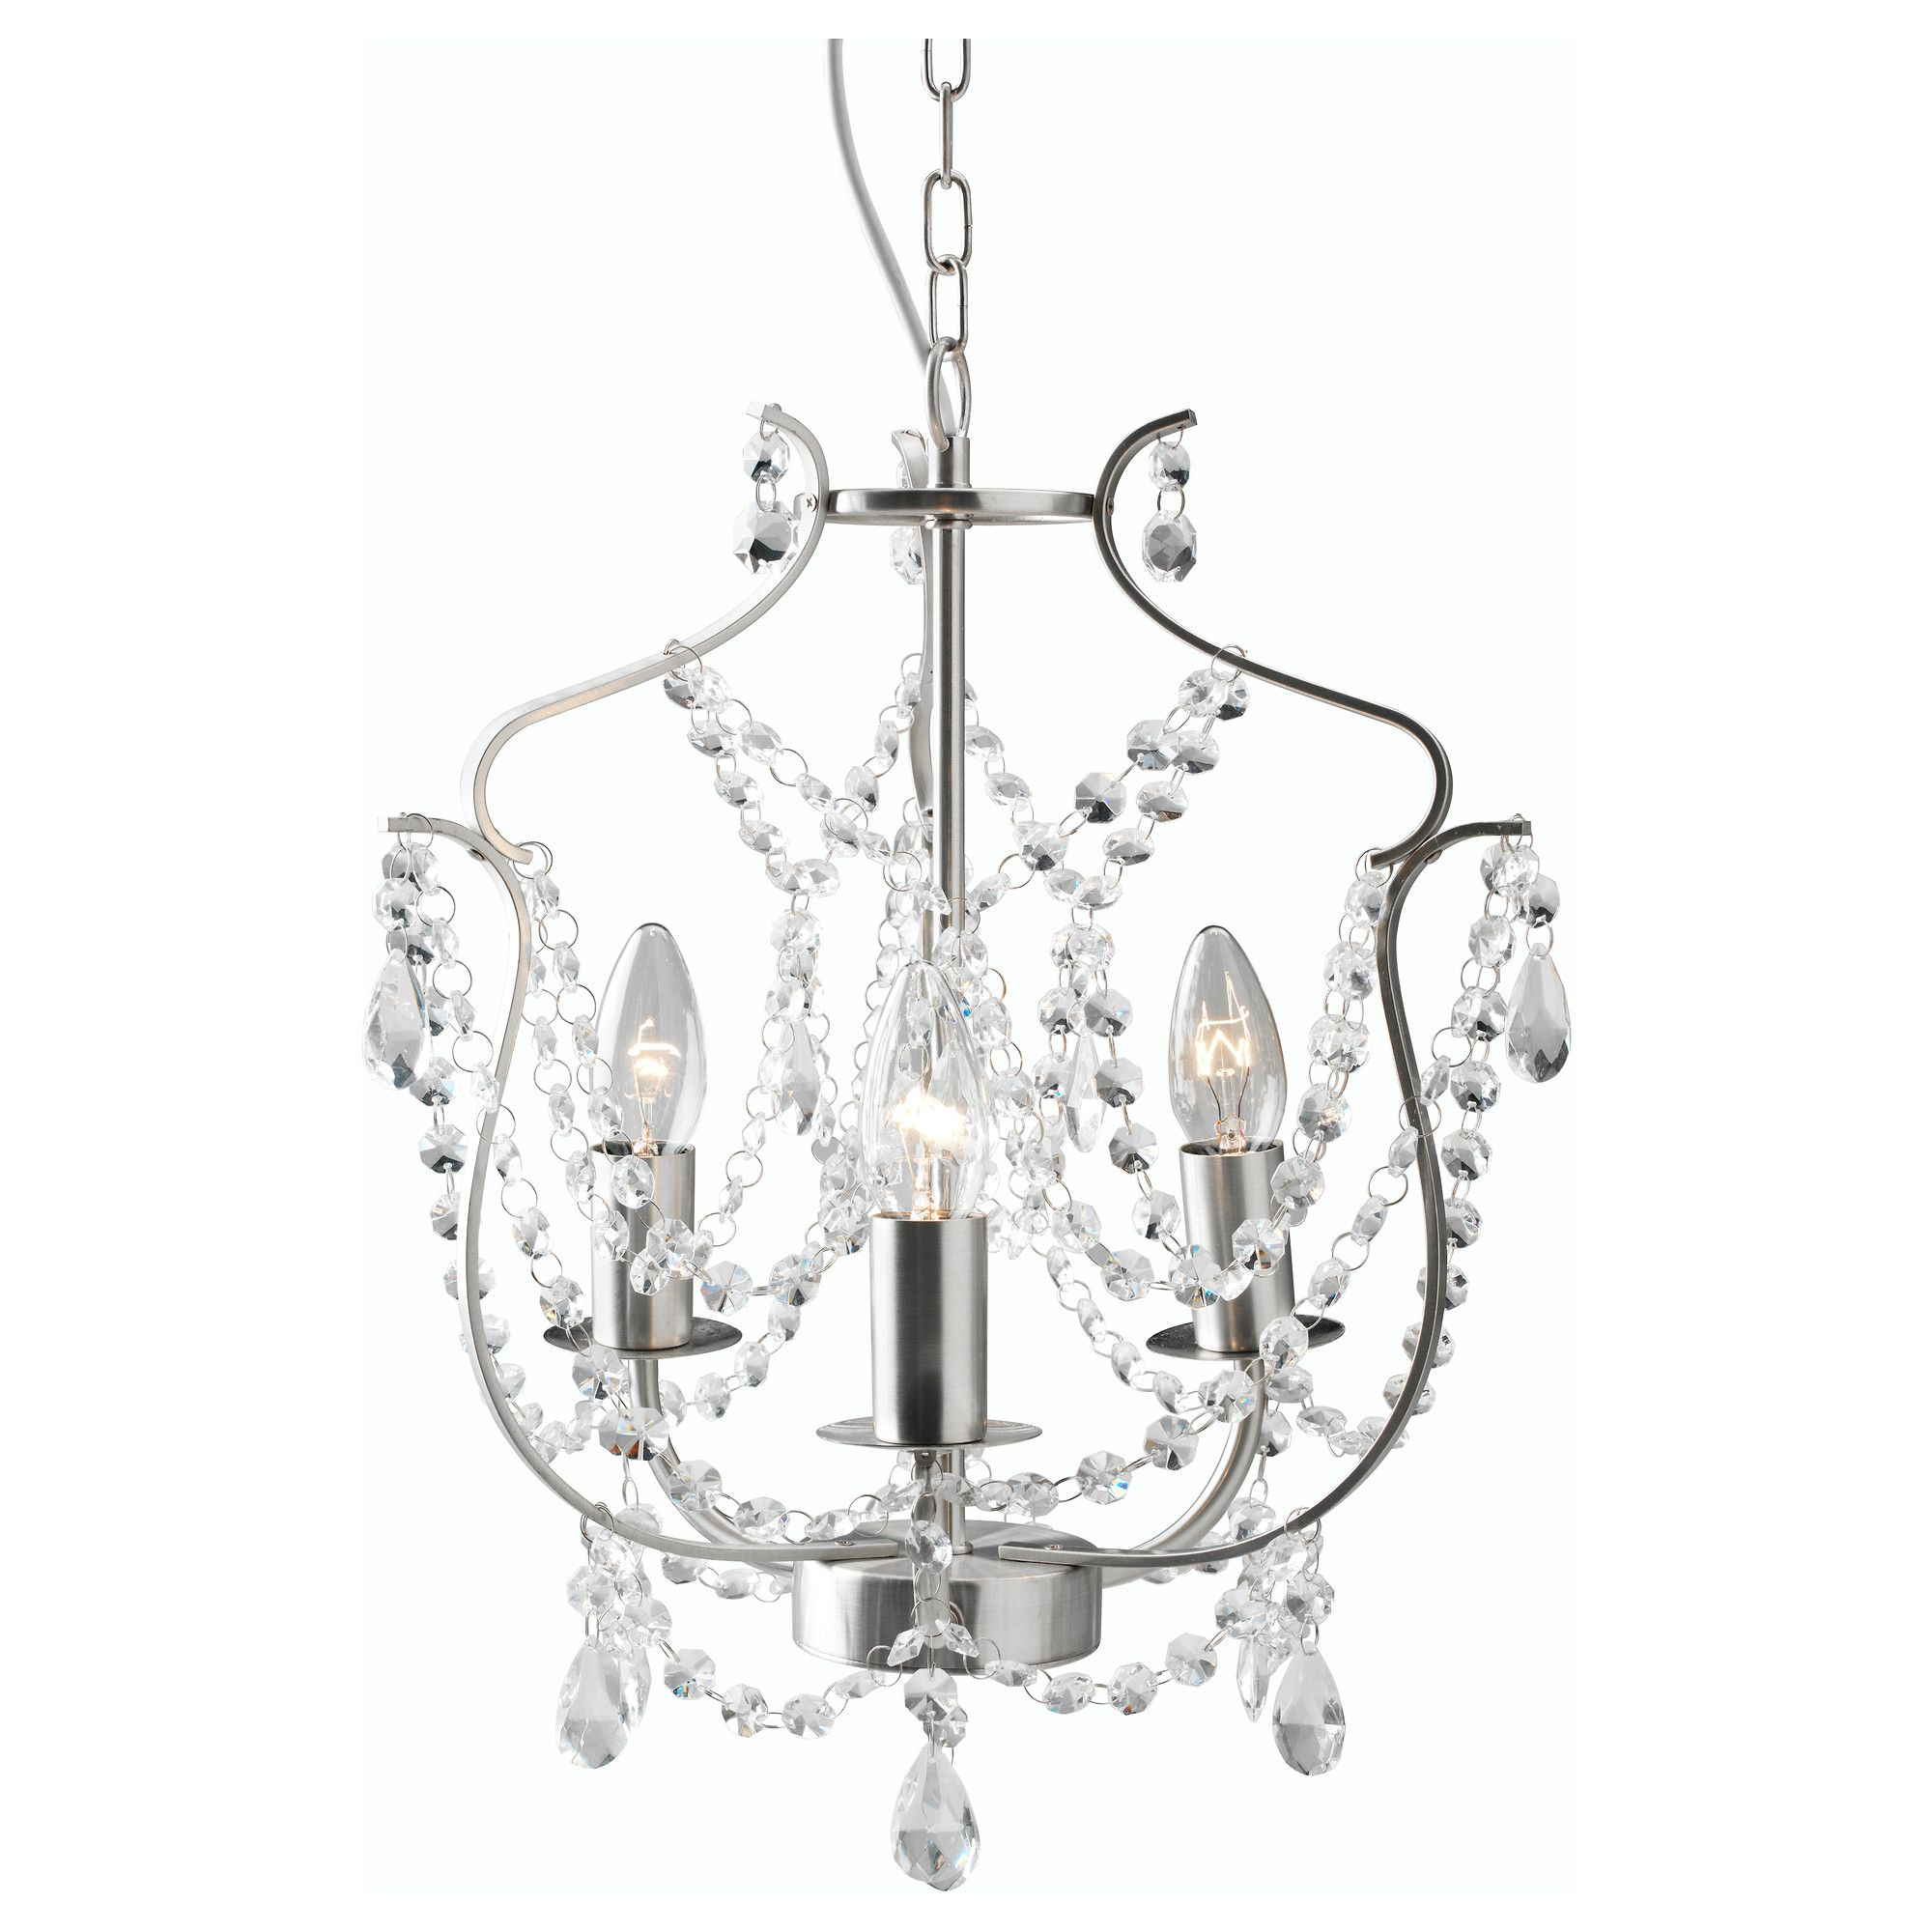 KRISTALLER Chandelier, 3-armed, silver color, glass | Pinterest ...